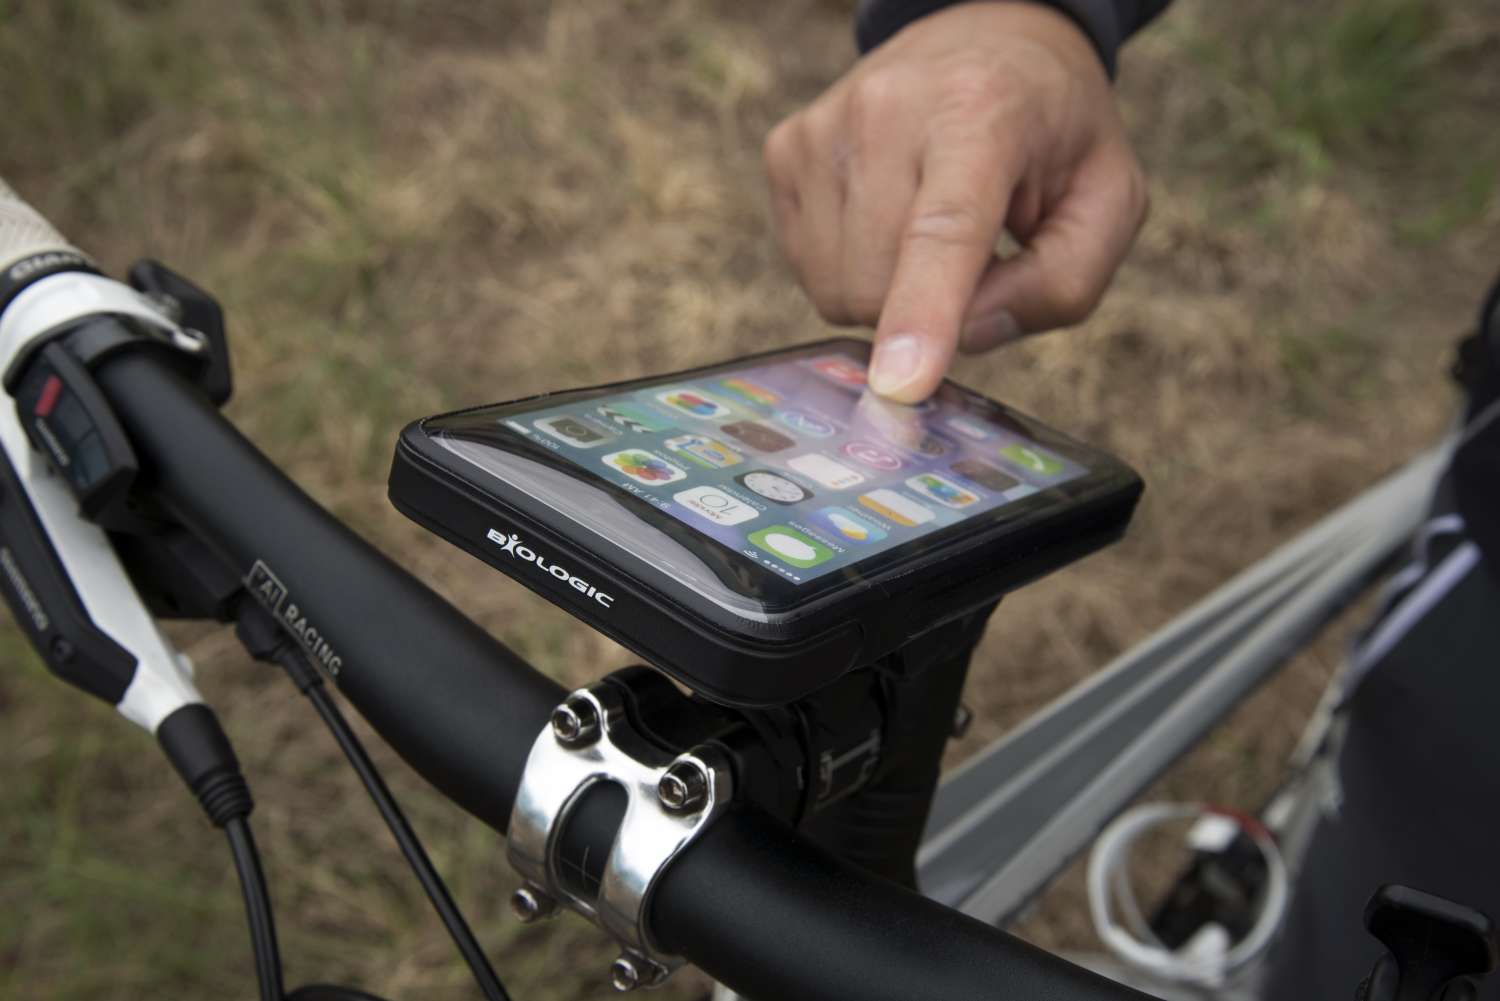 BioLogic-BM-WeatherCase-iPhone-6-Plus-MTB-10